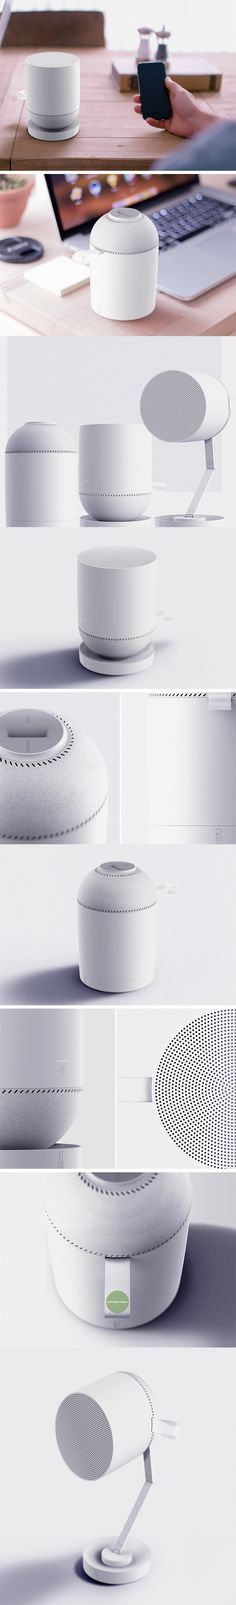 As minimalistic as it might be, the DrinKlean ZERO 1 mini air purifier packs a powerful, multifunctional punch! It can be used in one of three distinct ways. The first way can be used for immediate air purification even when you're on the go. The second way works as passive purification on the charging hub. The last way is for more aggressive air cleaning.